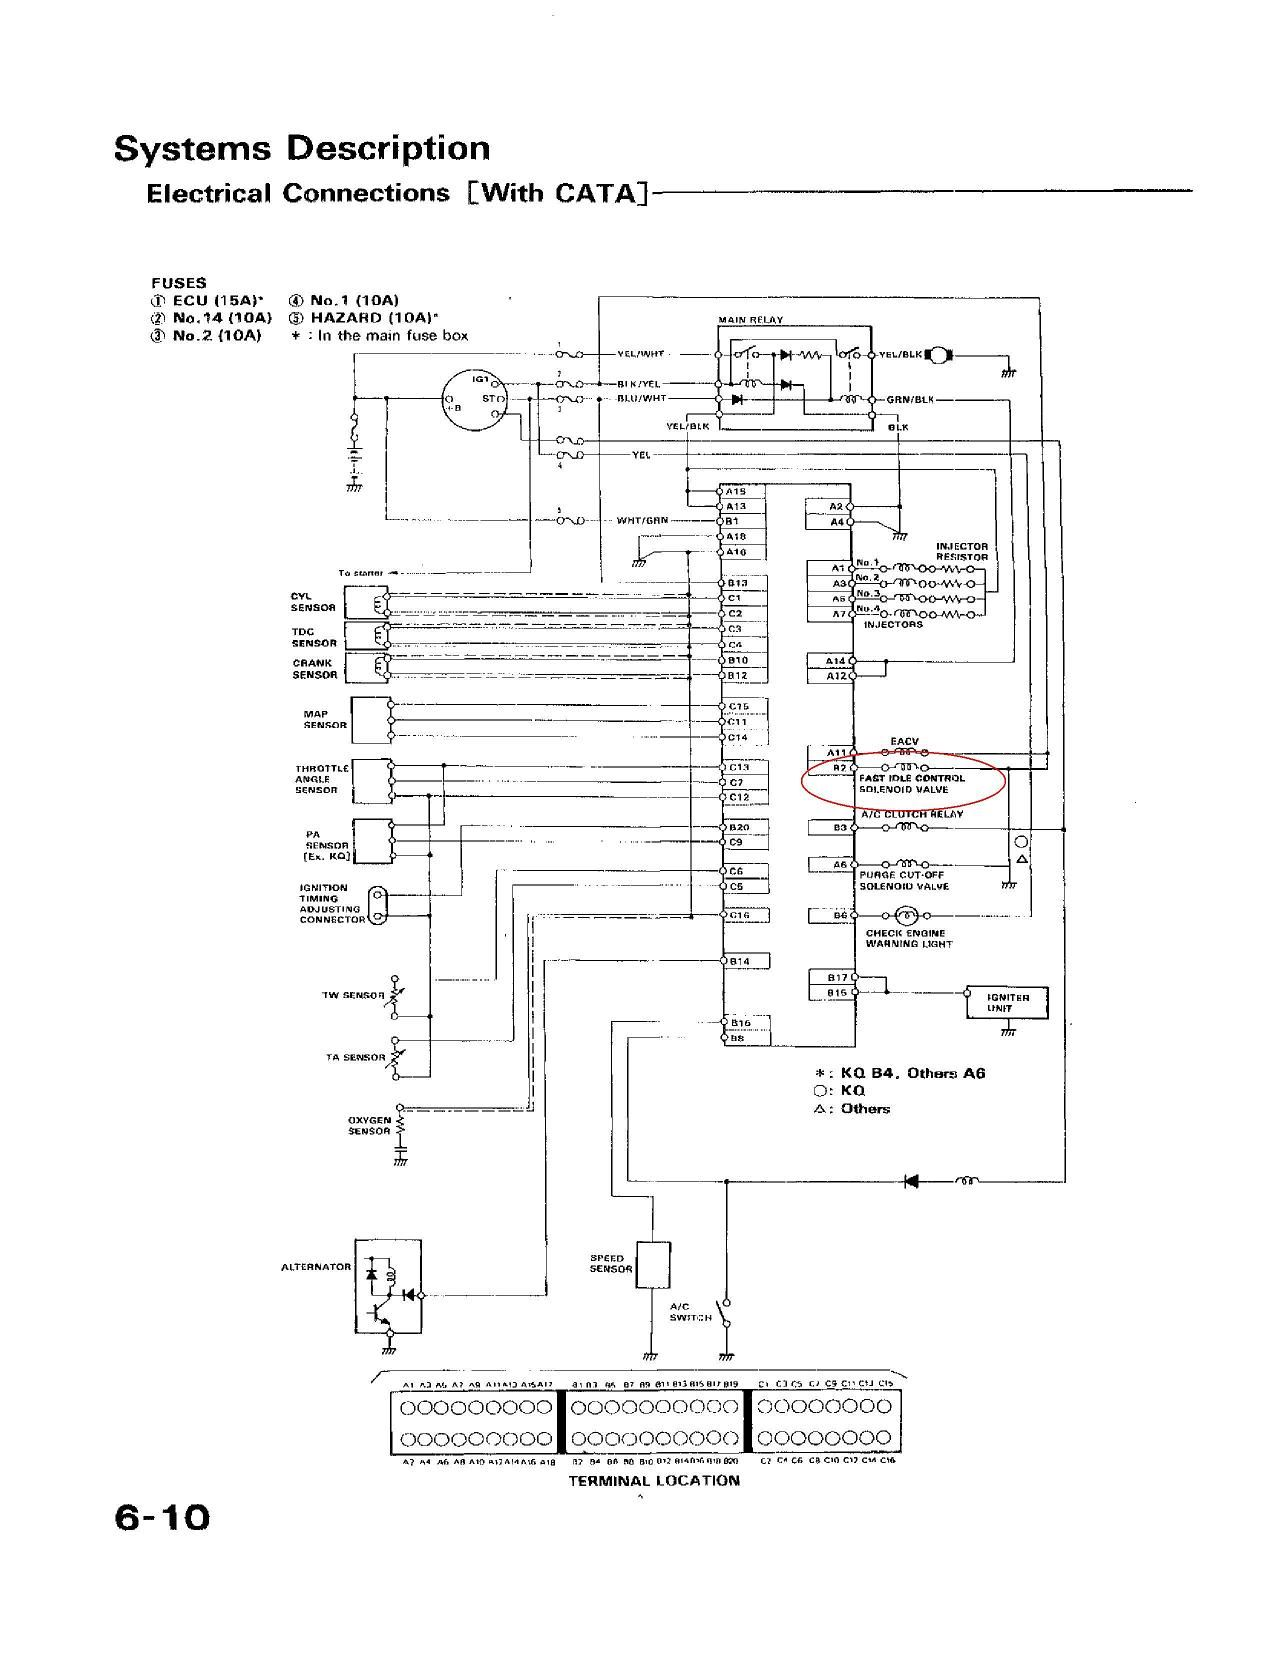 crx wiring diagram crx image wiring diagram crx wiring diagram wire diagram on crx wiring diagram